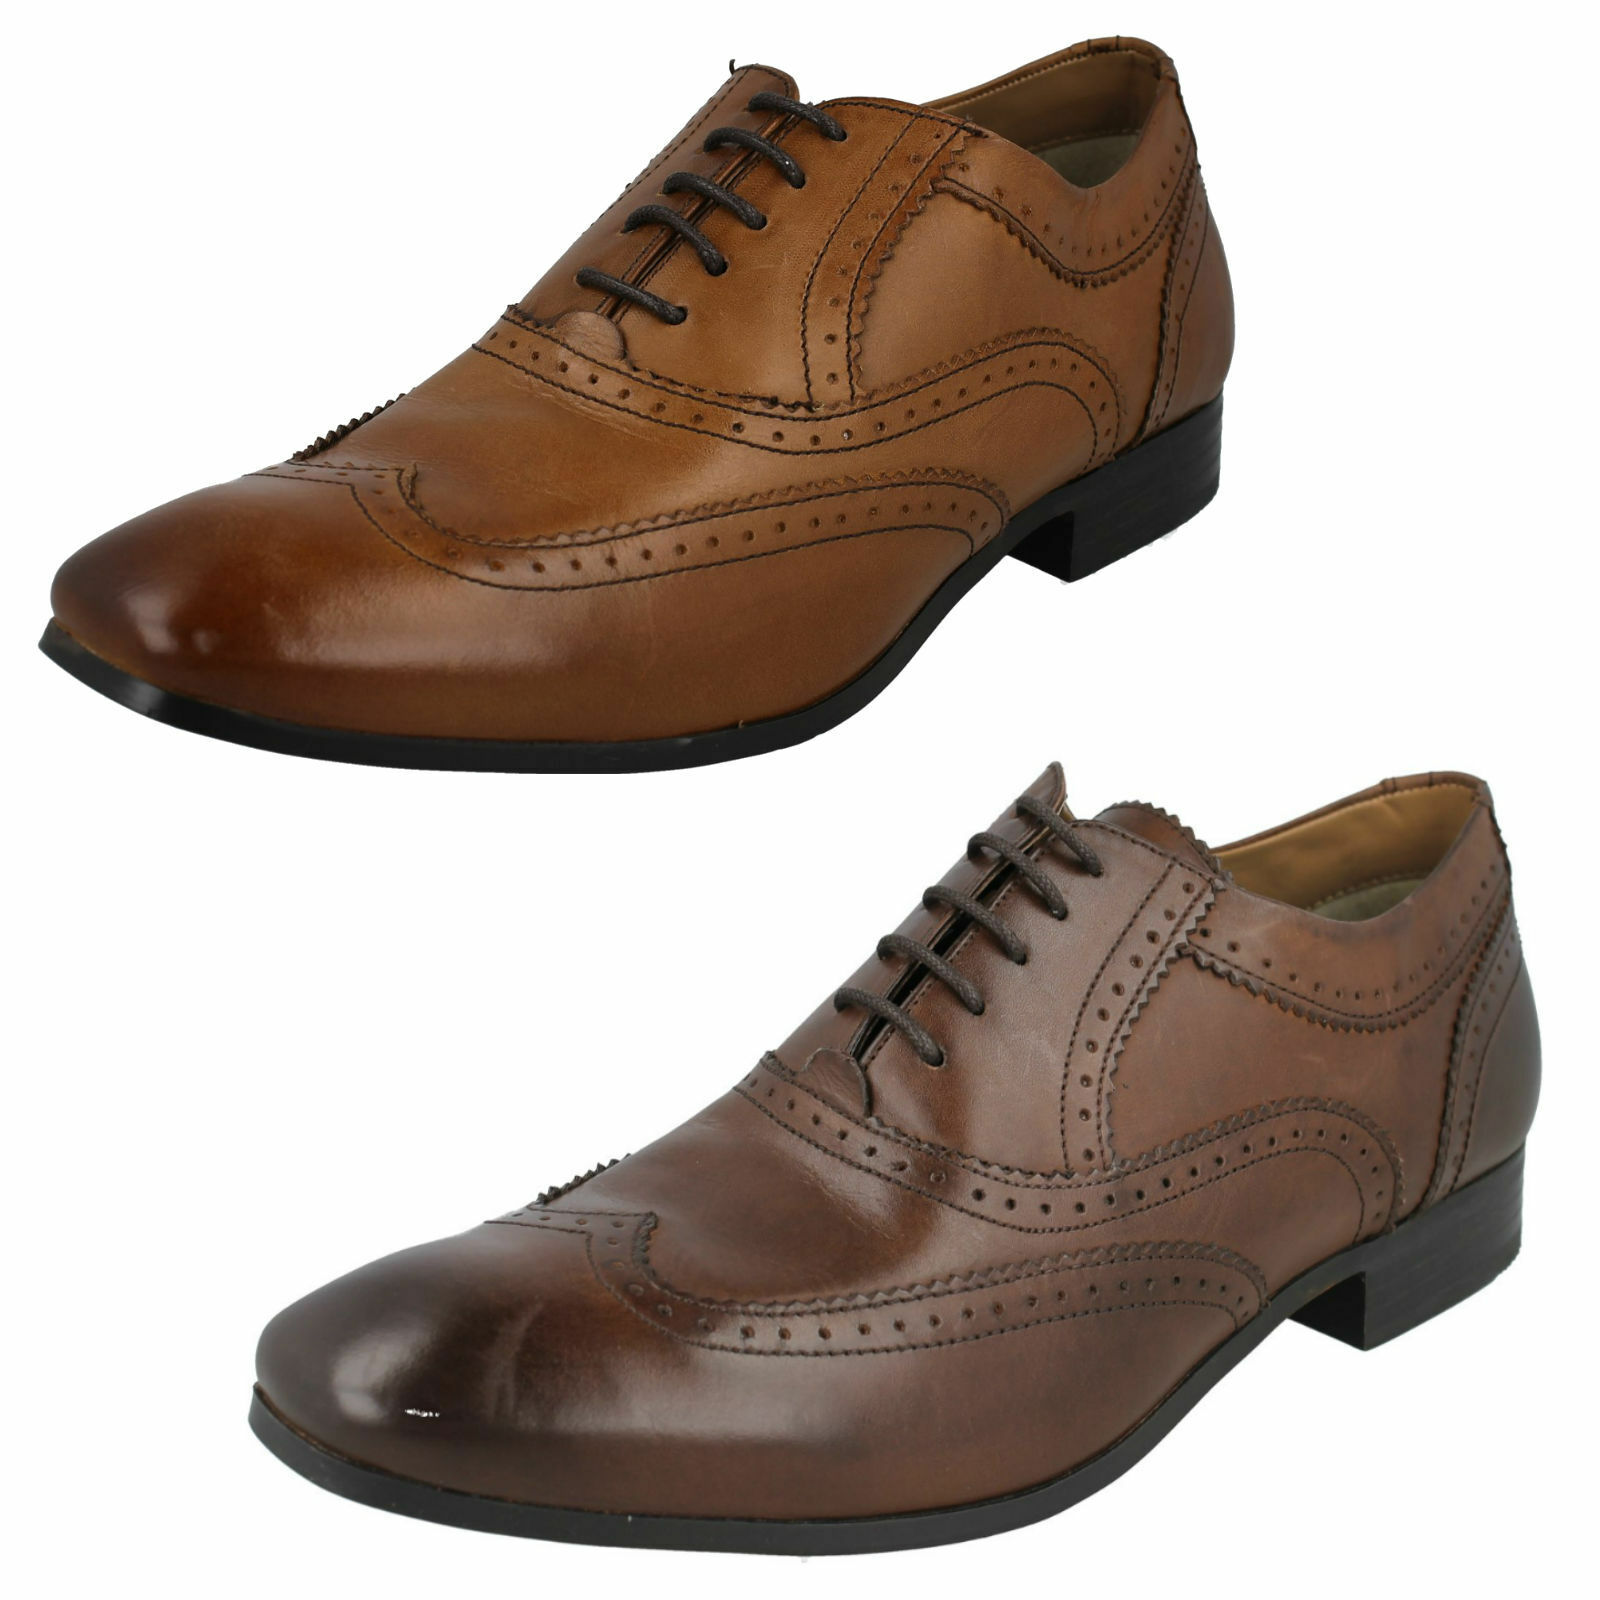 MENS BBSE LONDON COURT MTO BROWN TBN LBCE UP SMBRT CBSUBL BROUGE  SHOES